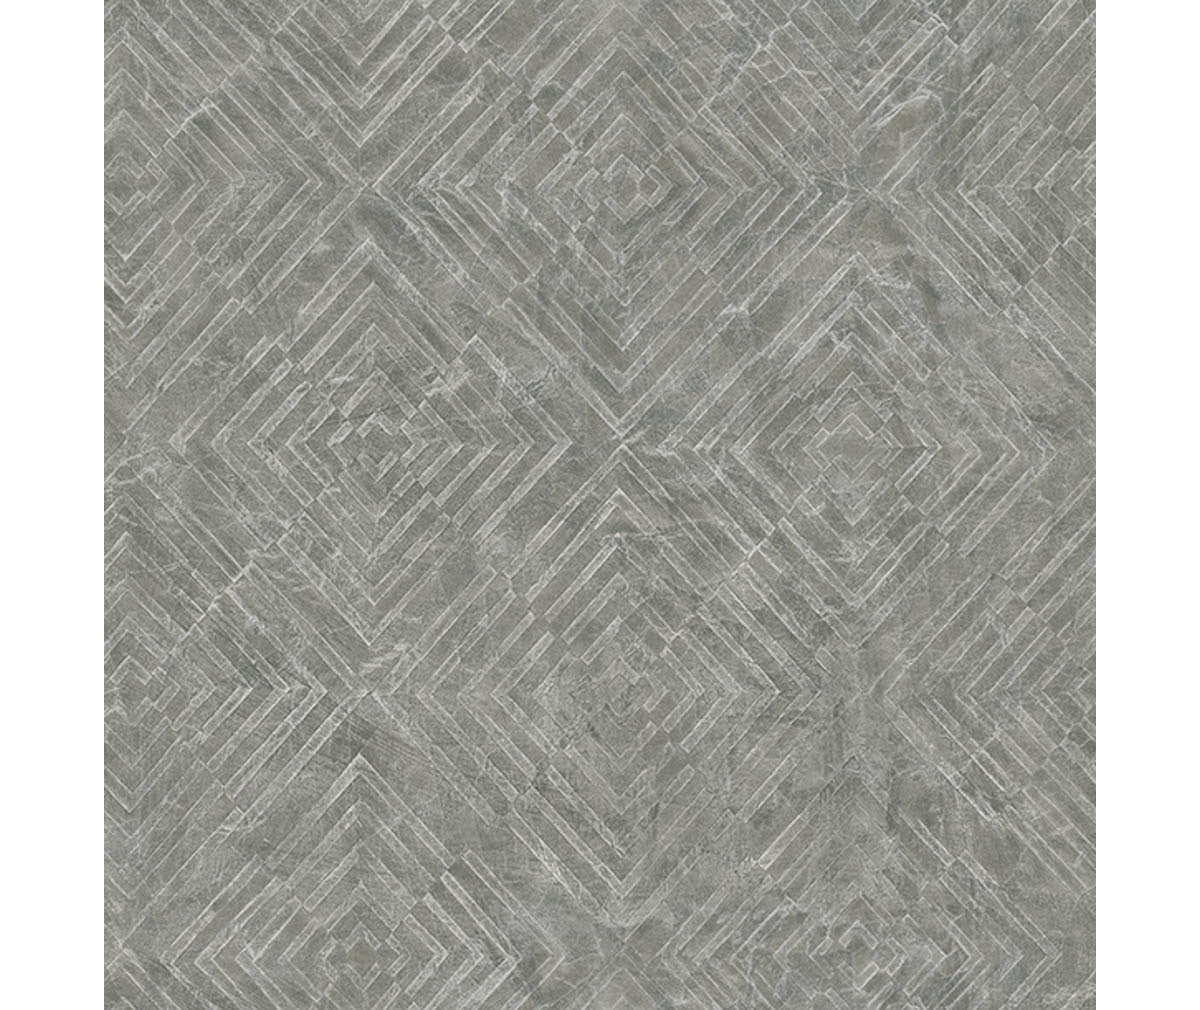 Labyrinth Pewter Geometric Wallpaper available at Barrydowne Paint